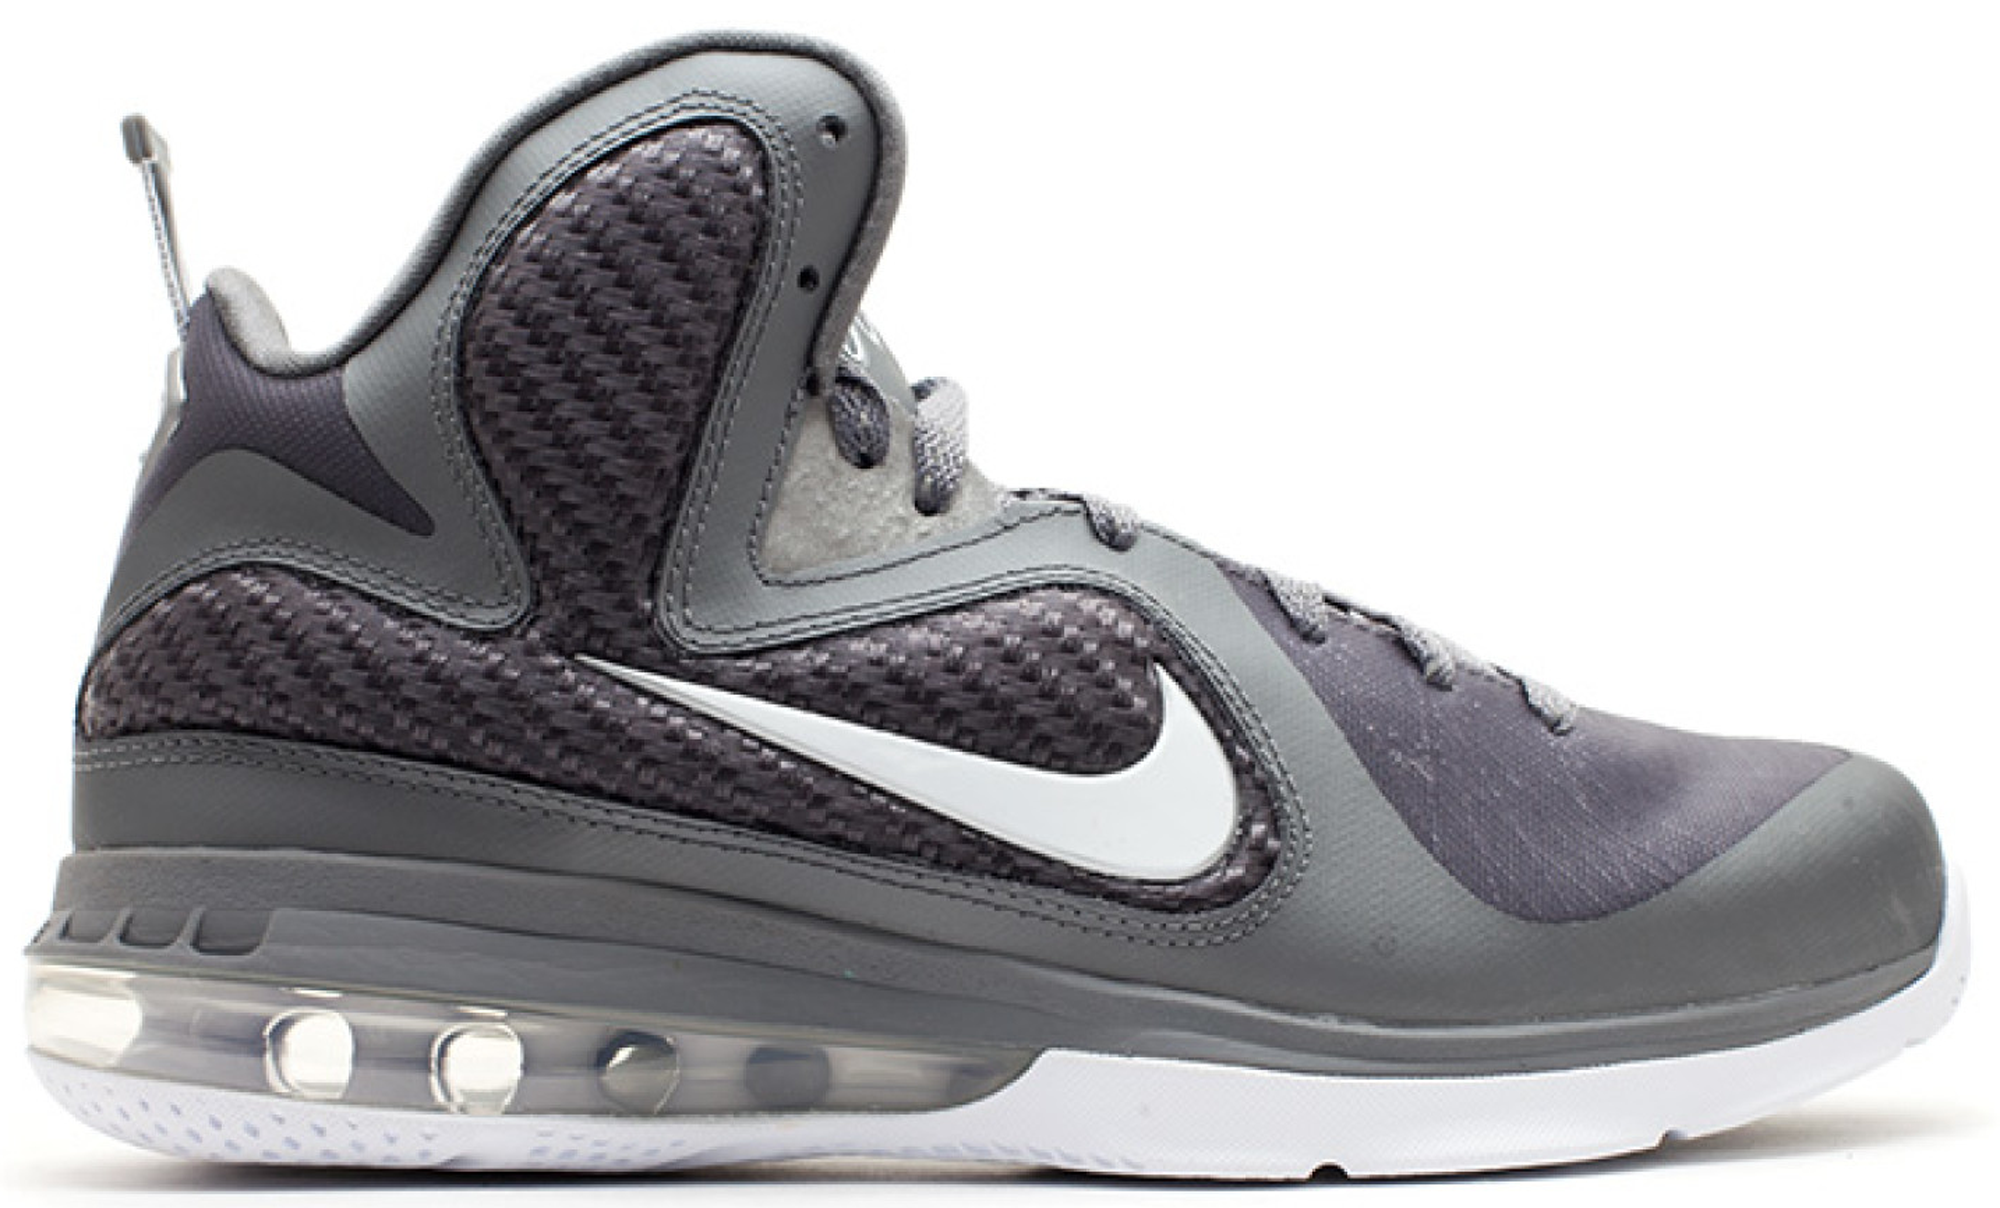 new concept 1a147 dea17 nike lebron 9 soldier  nike lebron 9 cool grey gs